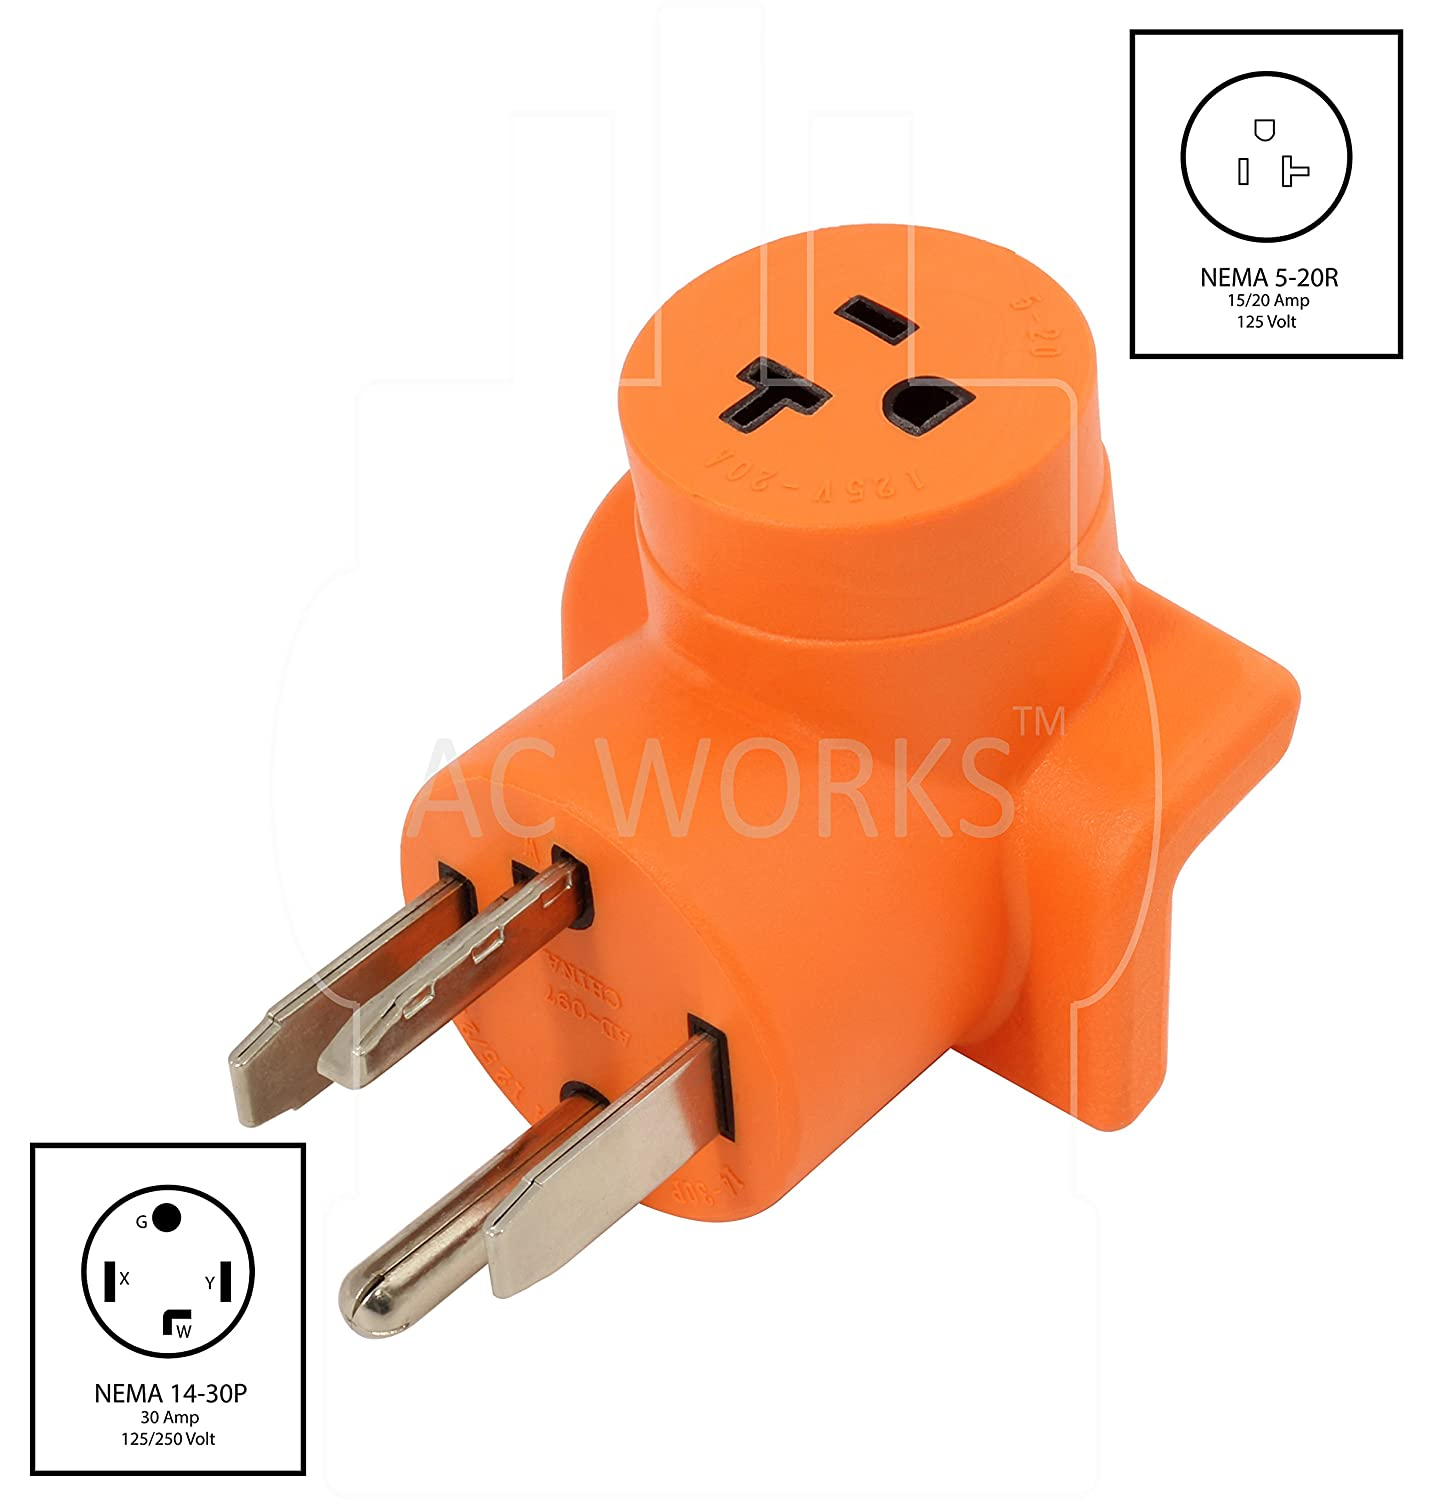 Ac Works Ad1430520 Plug Adapter Nema 14 30p 30amp Dryer Outlet To 20r Wiring Diagram Household 15 20amp T Blade Female Connector Standard Outlets Amazon Canada